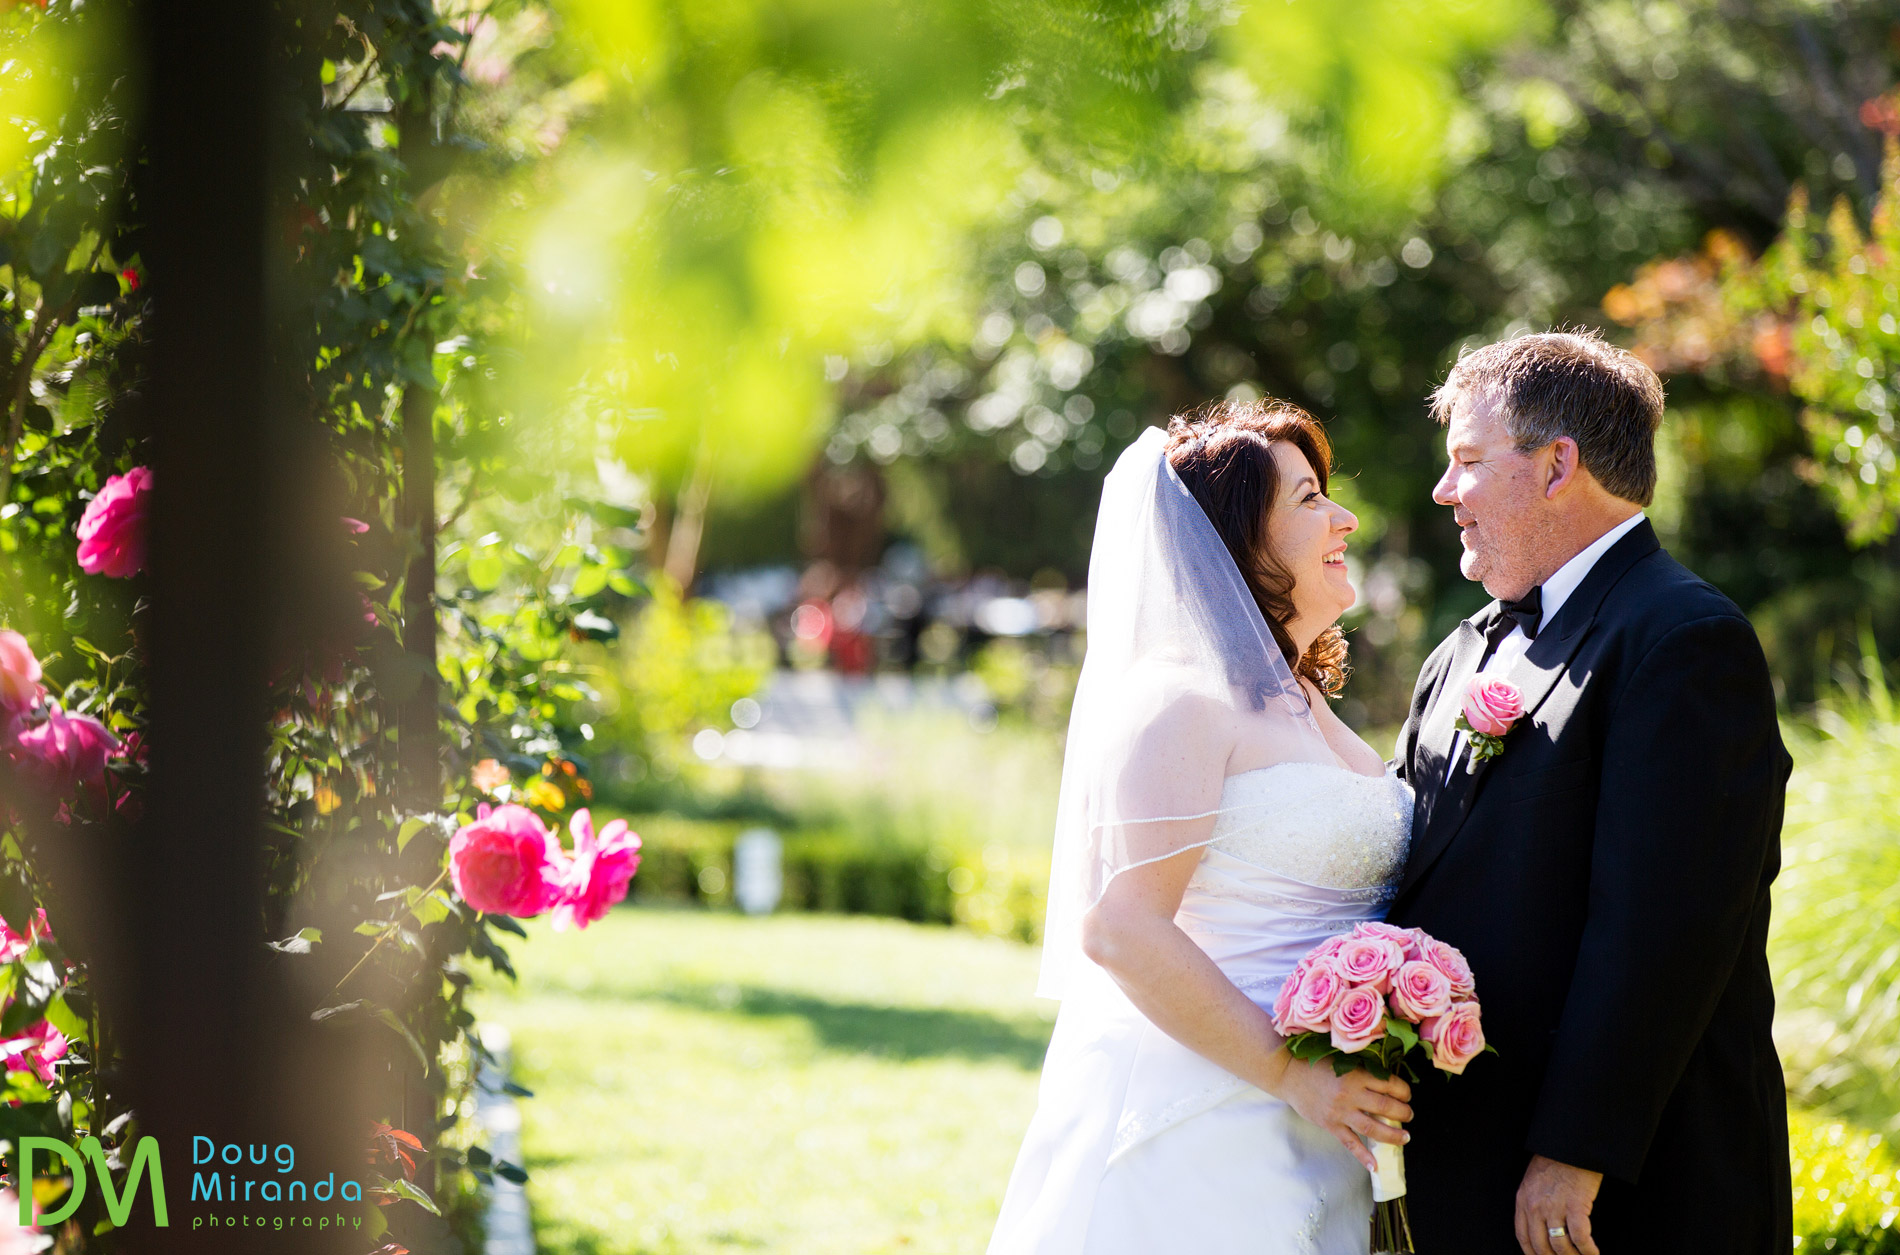 mckinley park rose garden wedding